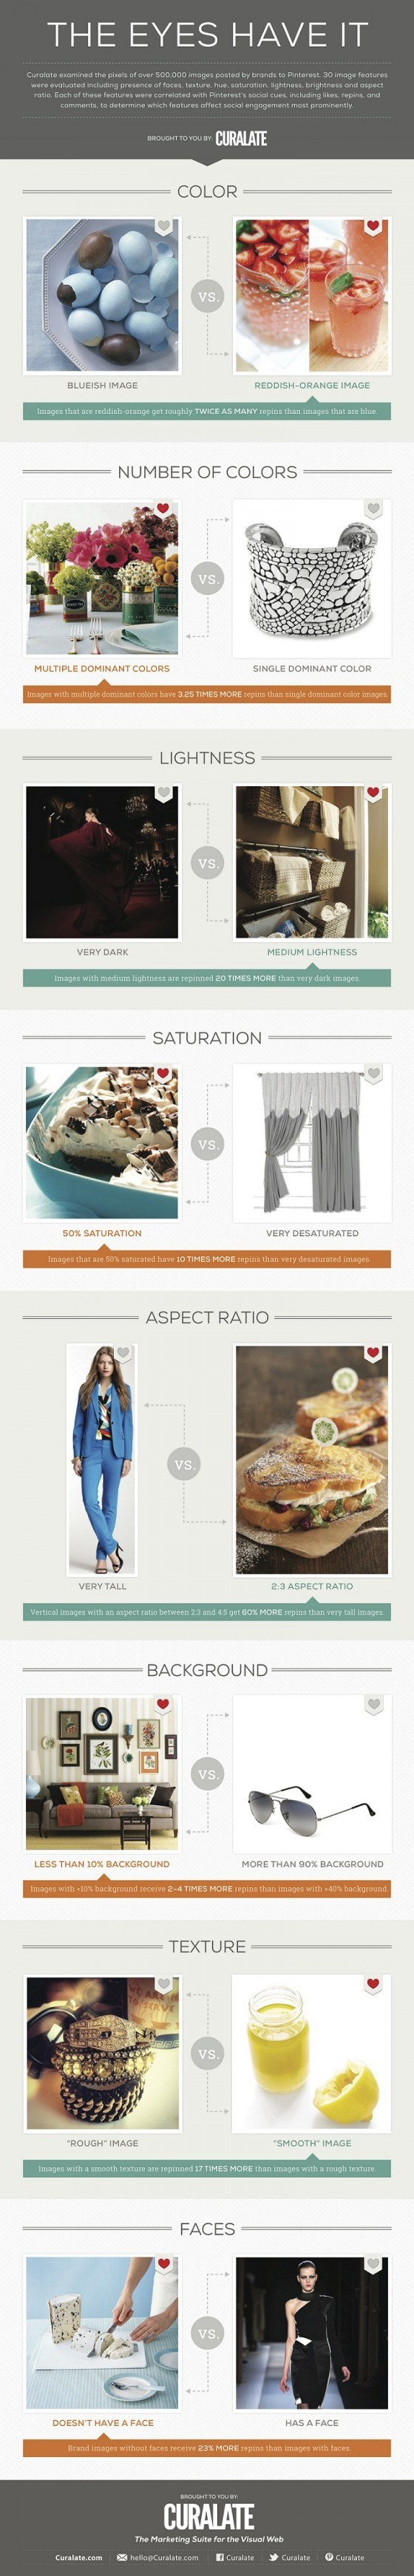 optimisation-images-repins-pinterest